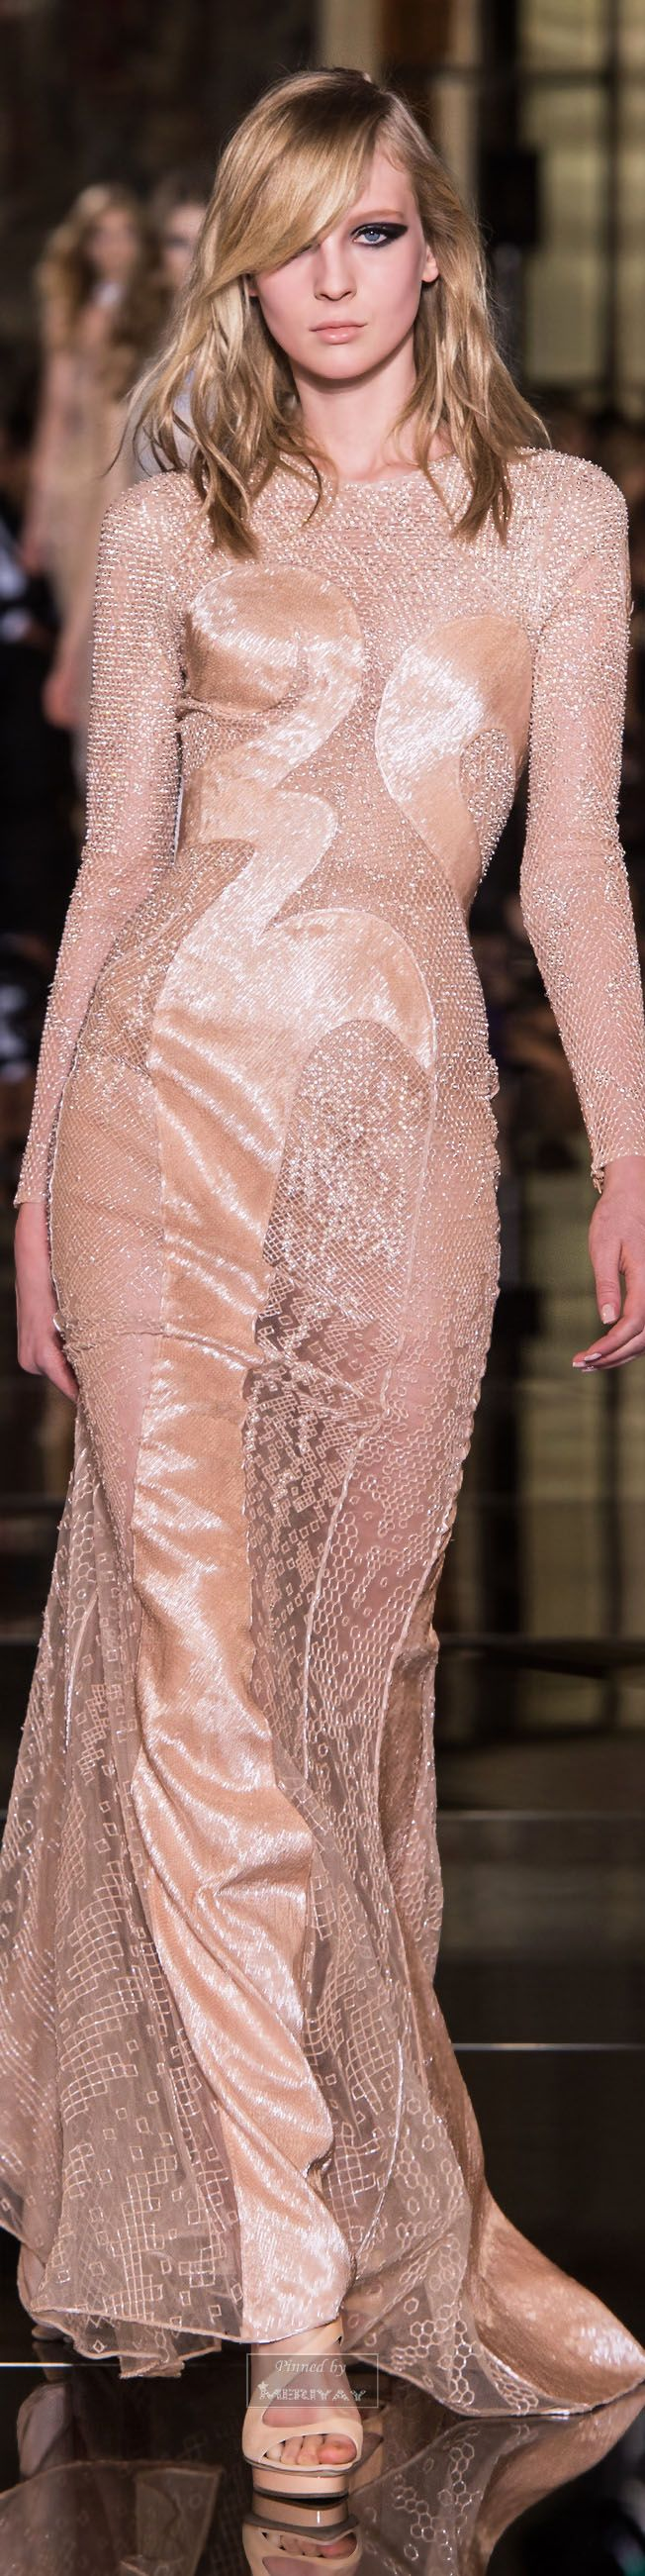 72 best Versace images on Pinterest | Evening gowns, Woman fashion ...